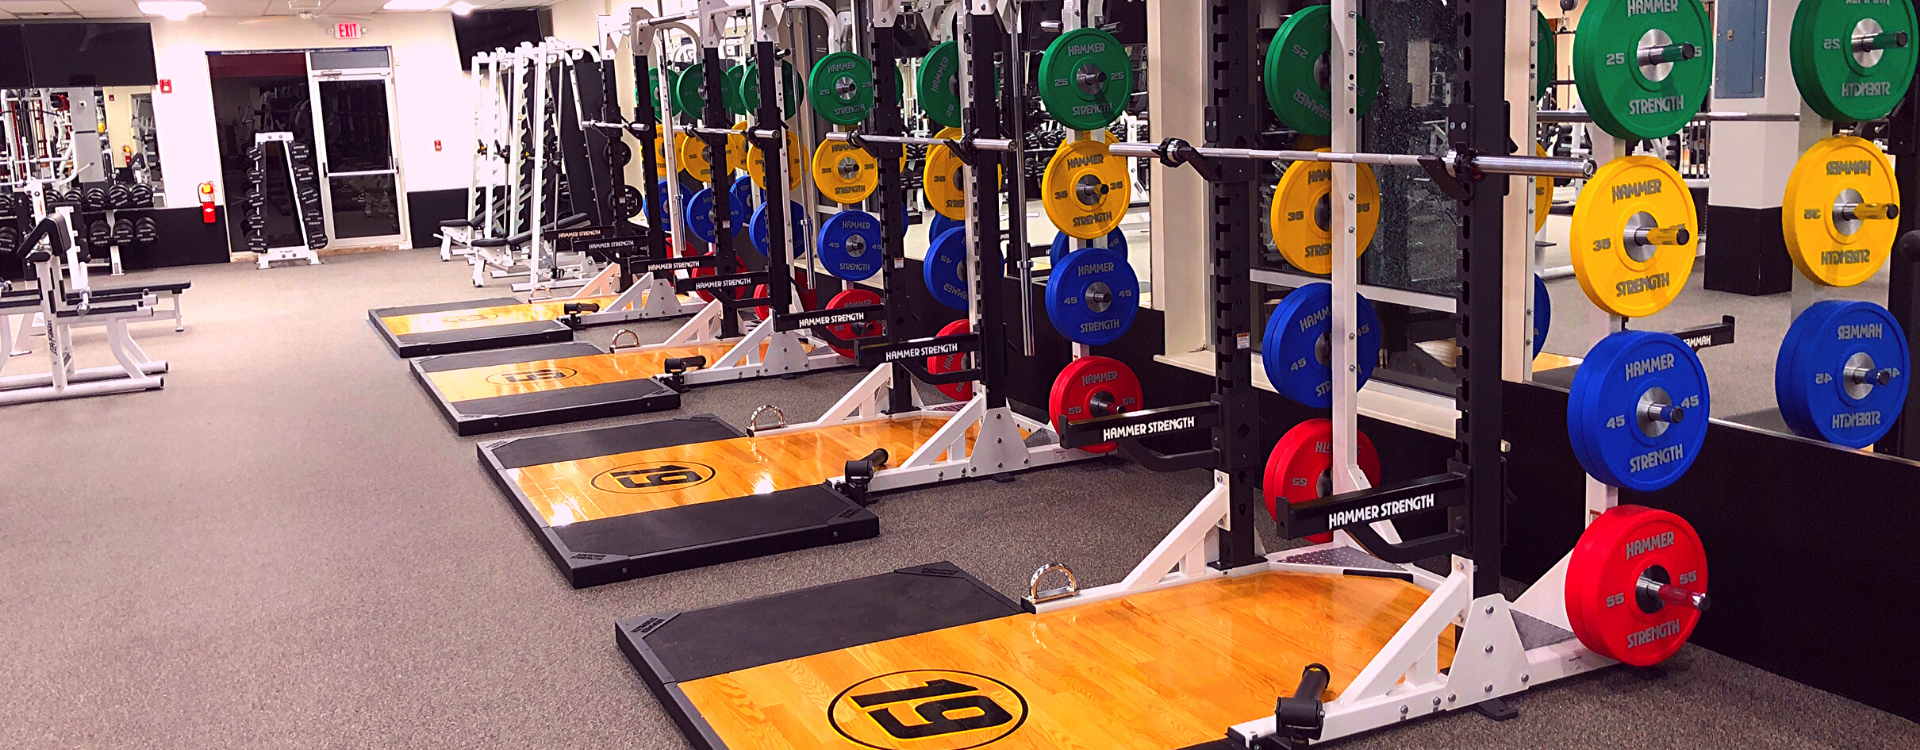 workout at the free weight strength training power racks at the gym